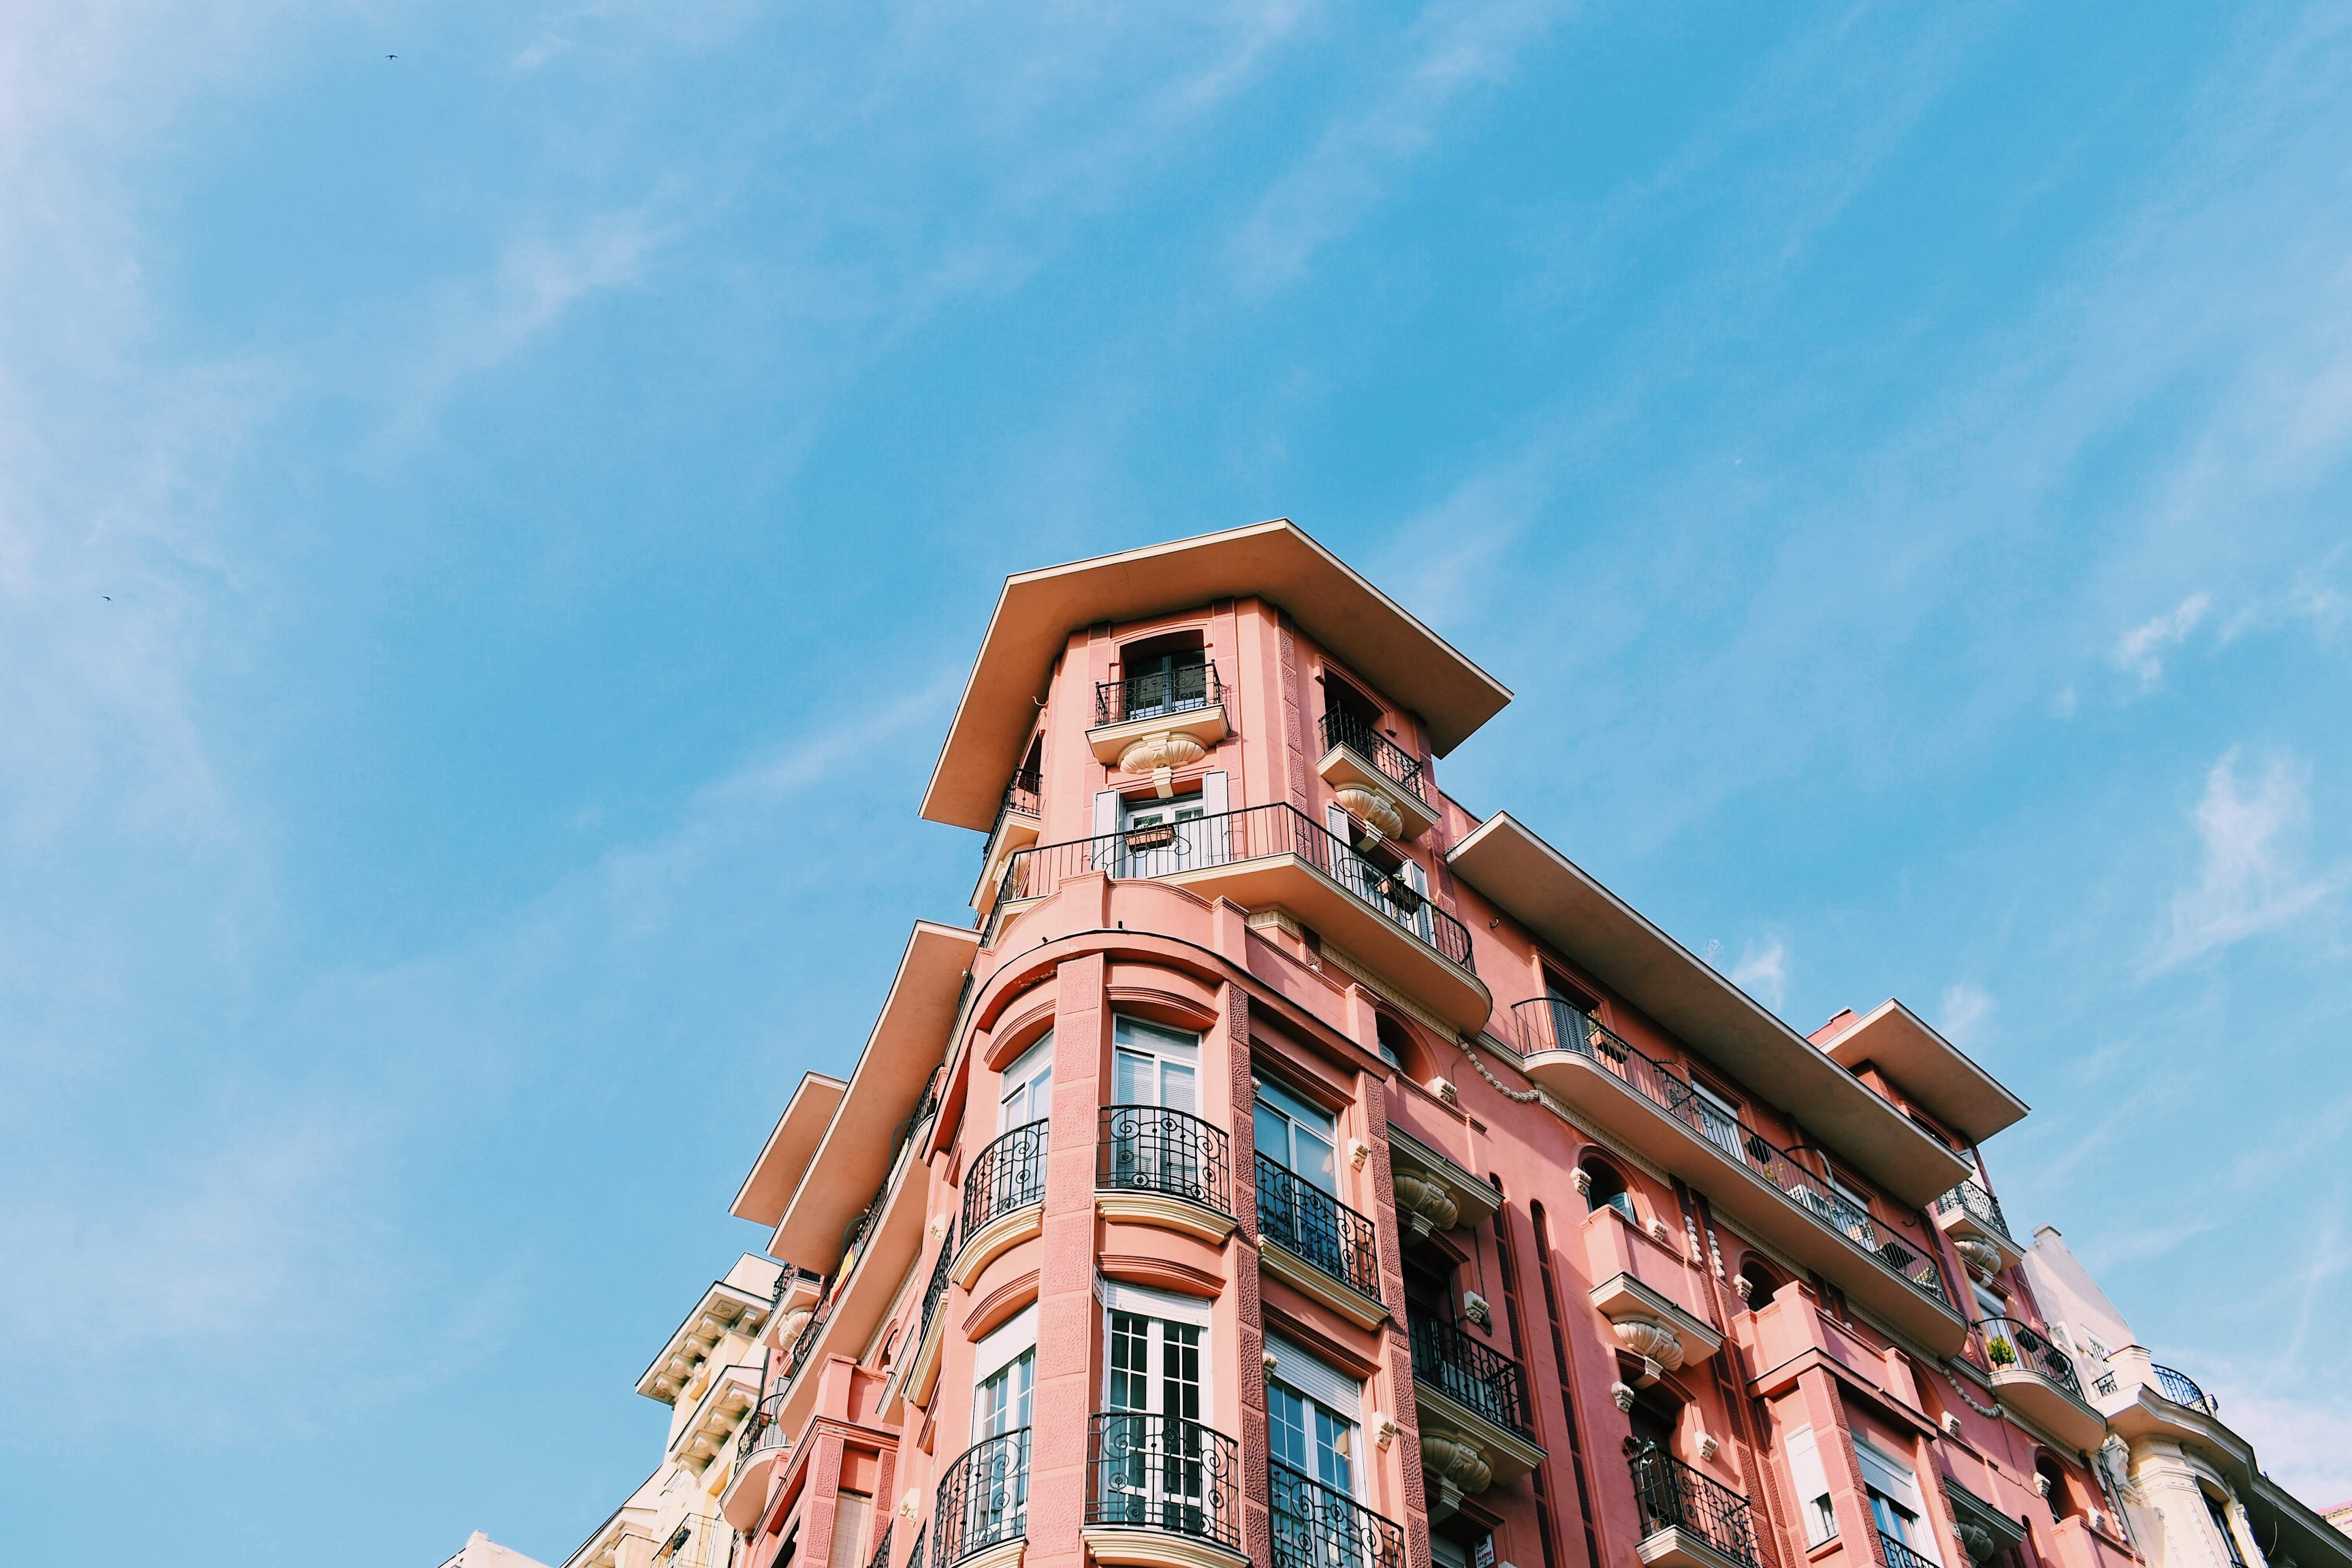 Dramatic pink building set against blue sky with clouds in Madrid